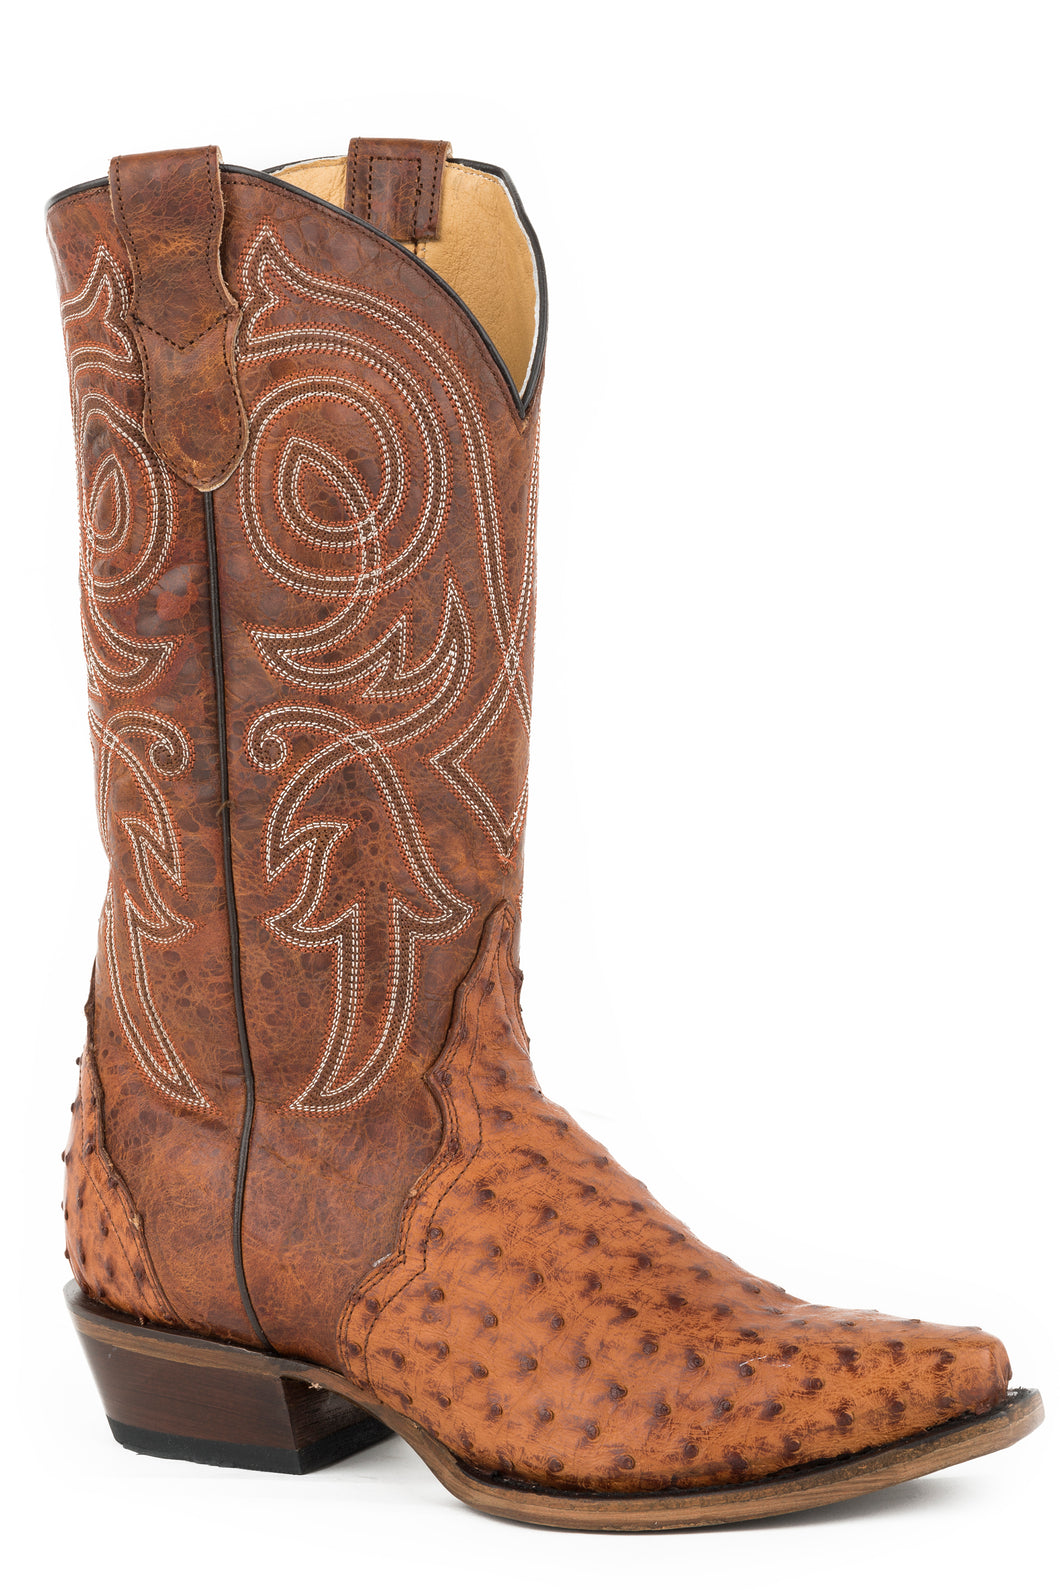 Trudy Triad Boot Womens Boots Burnished Cognac Ostrich Vamp